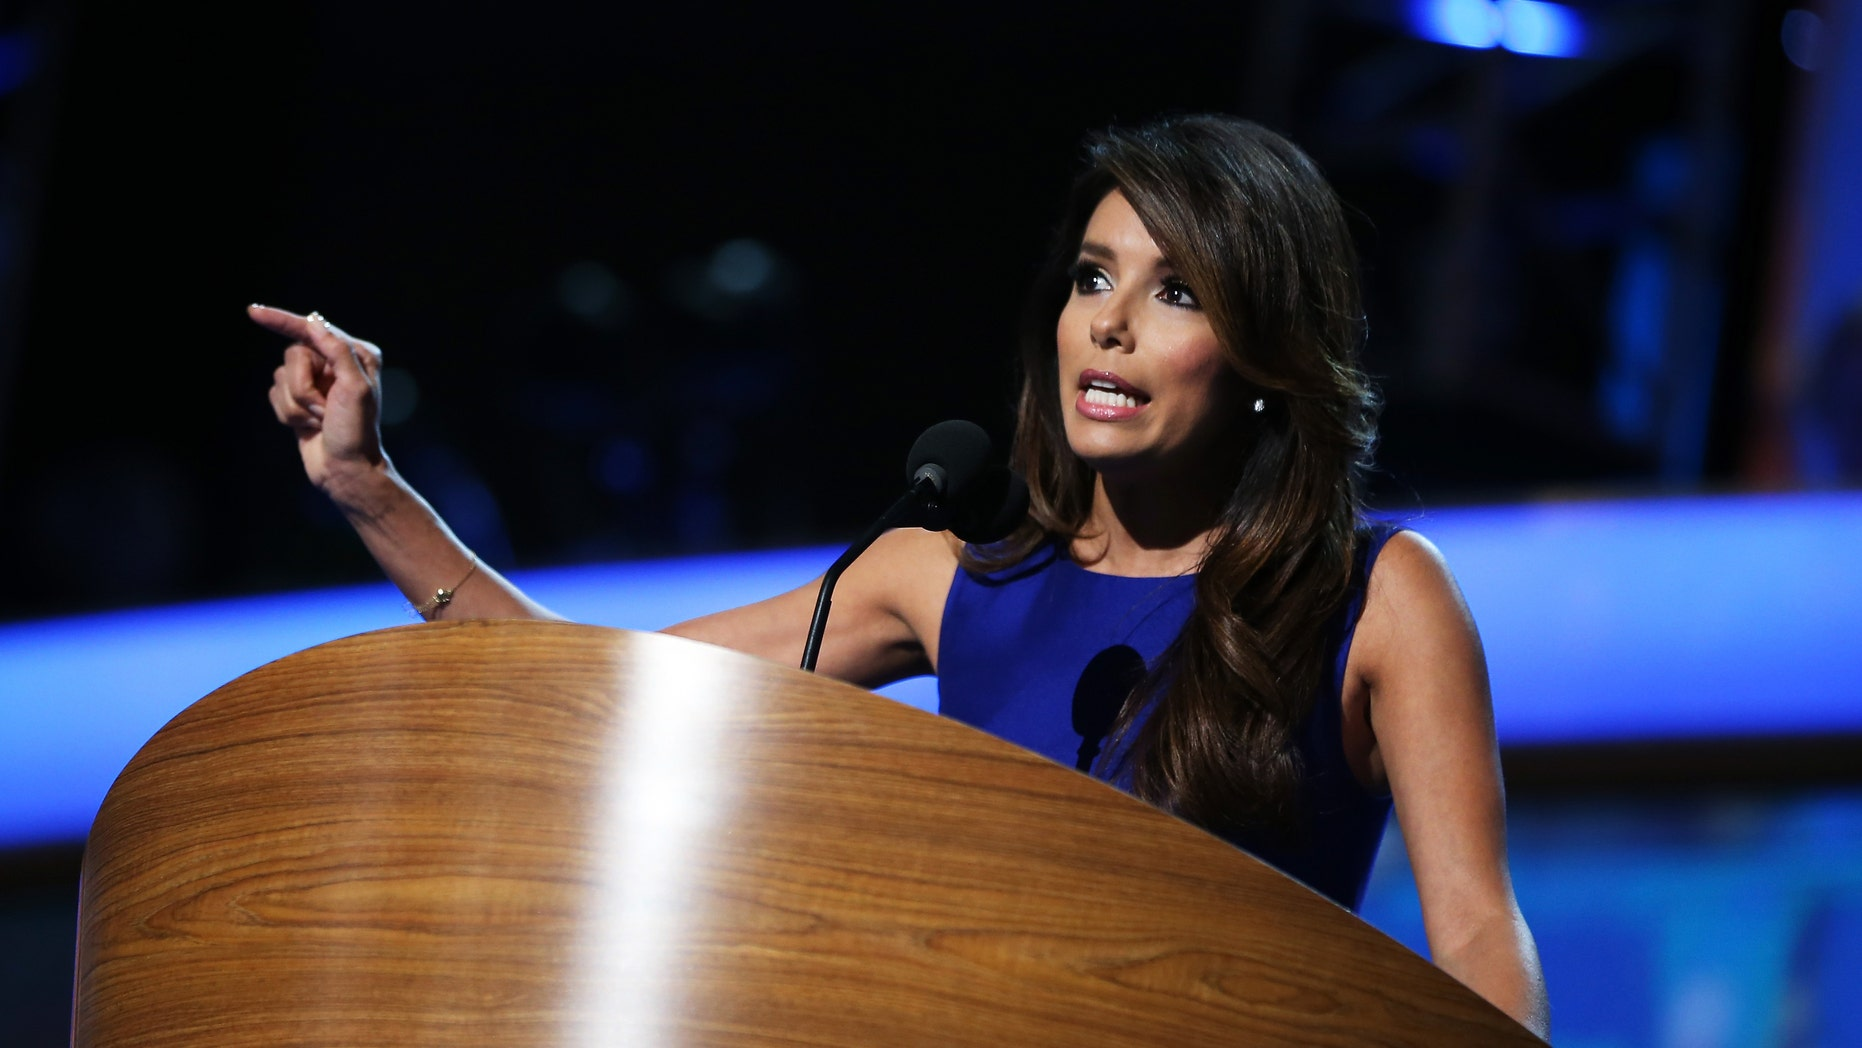 Actress Eva Longoria speaks on stage during the final day of the Democratic National Convention in 2012 in Charlotte, North Carolina.